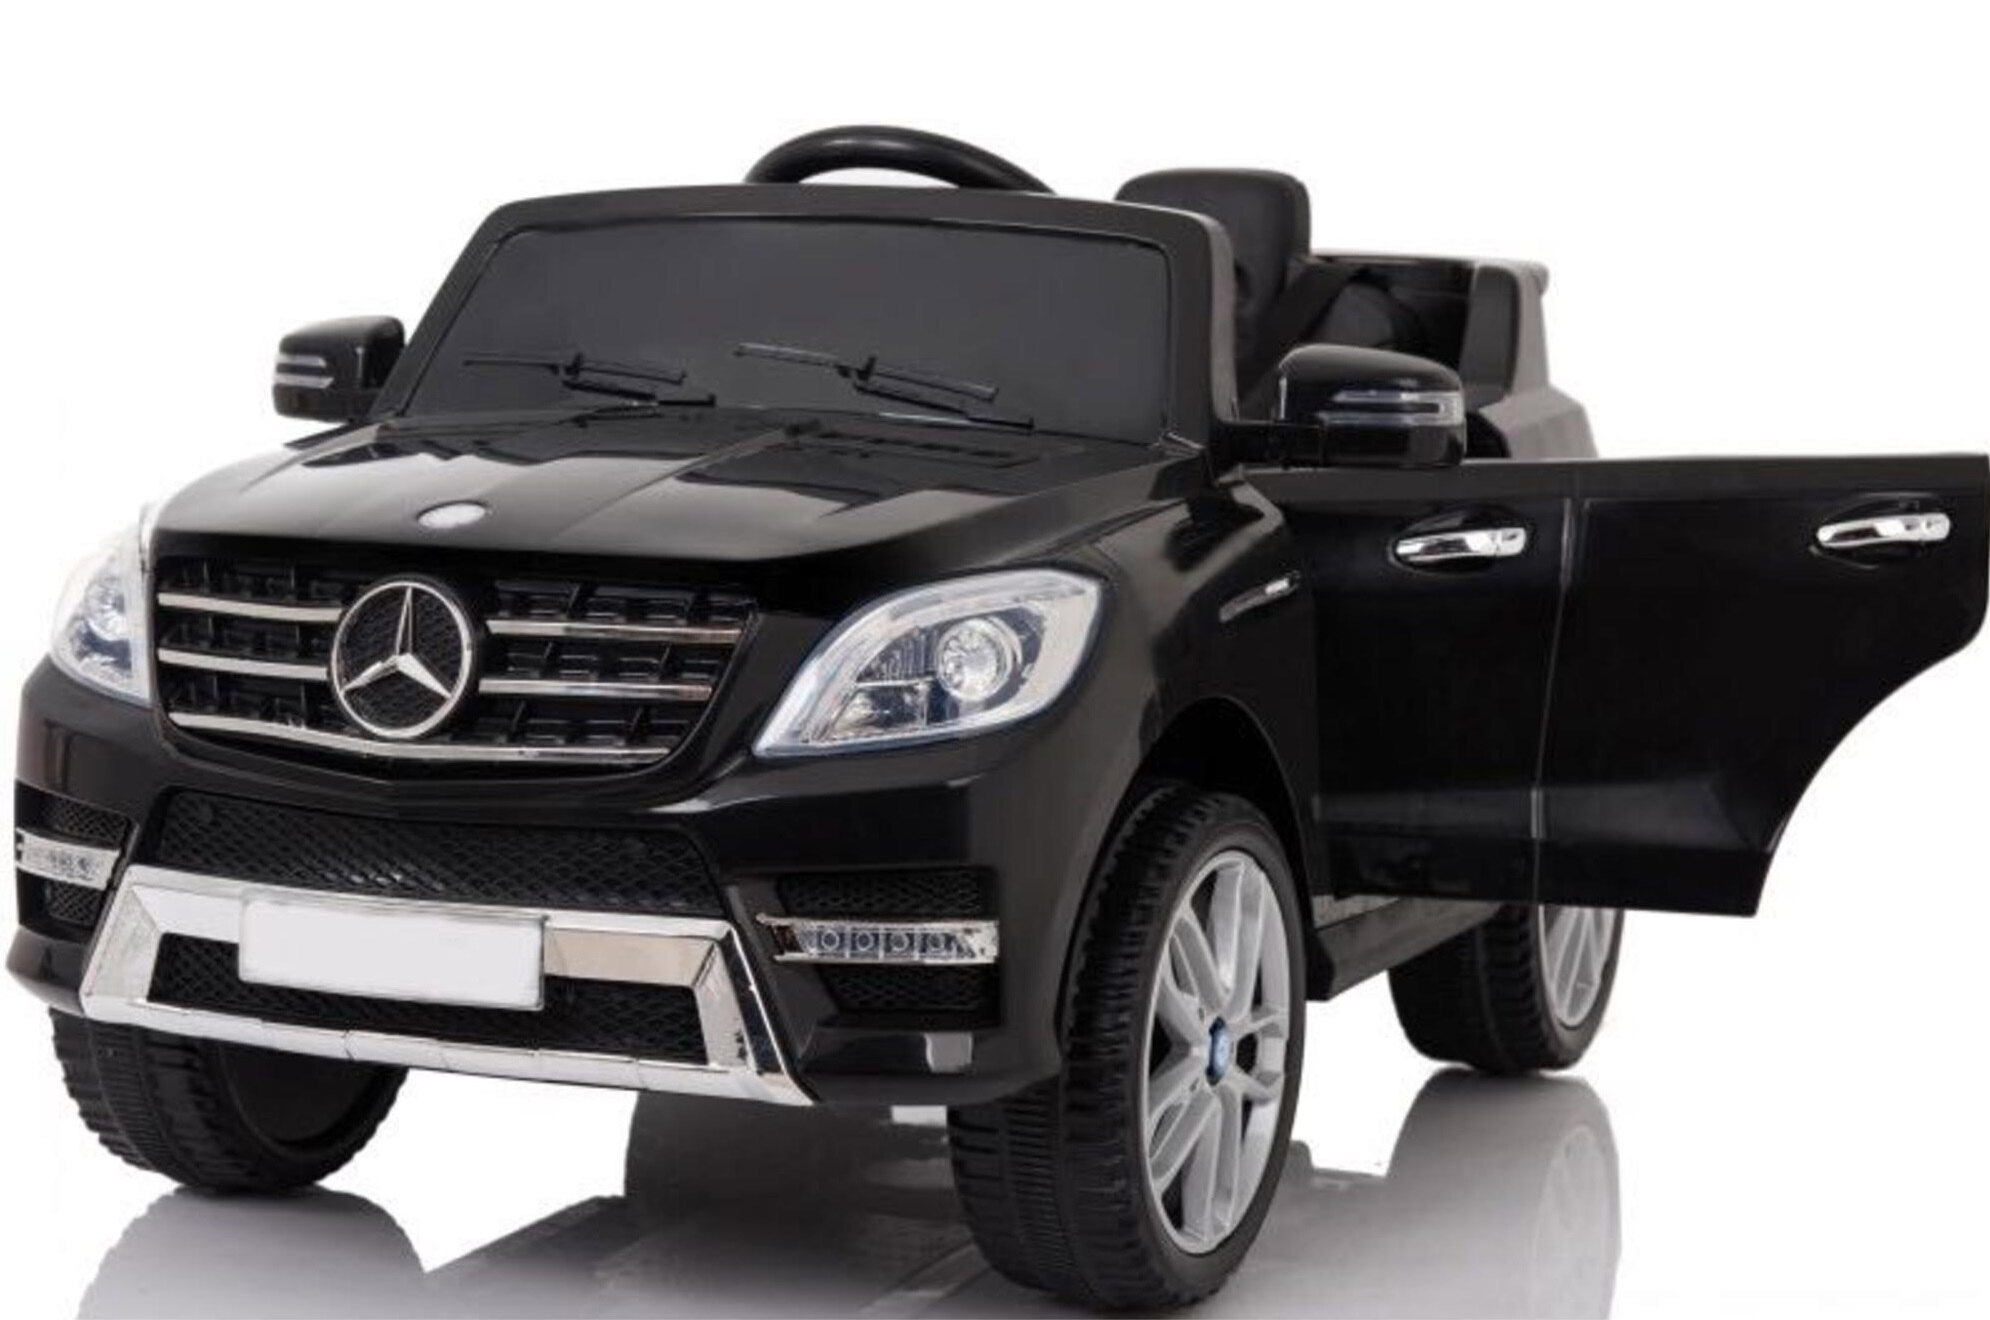 Ride On Car Mercedes Ml350 6v For Kids Electric Battery Mp3 Remote Control Black 0